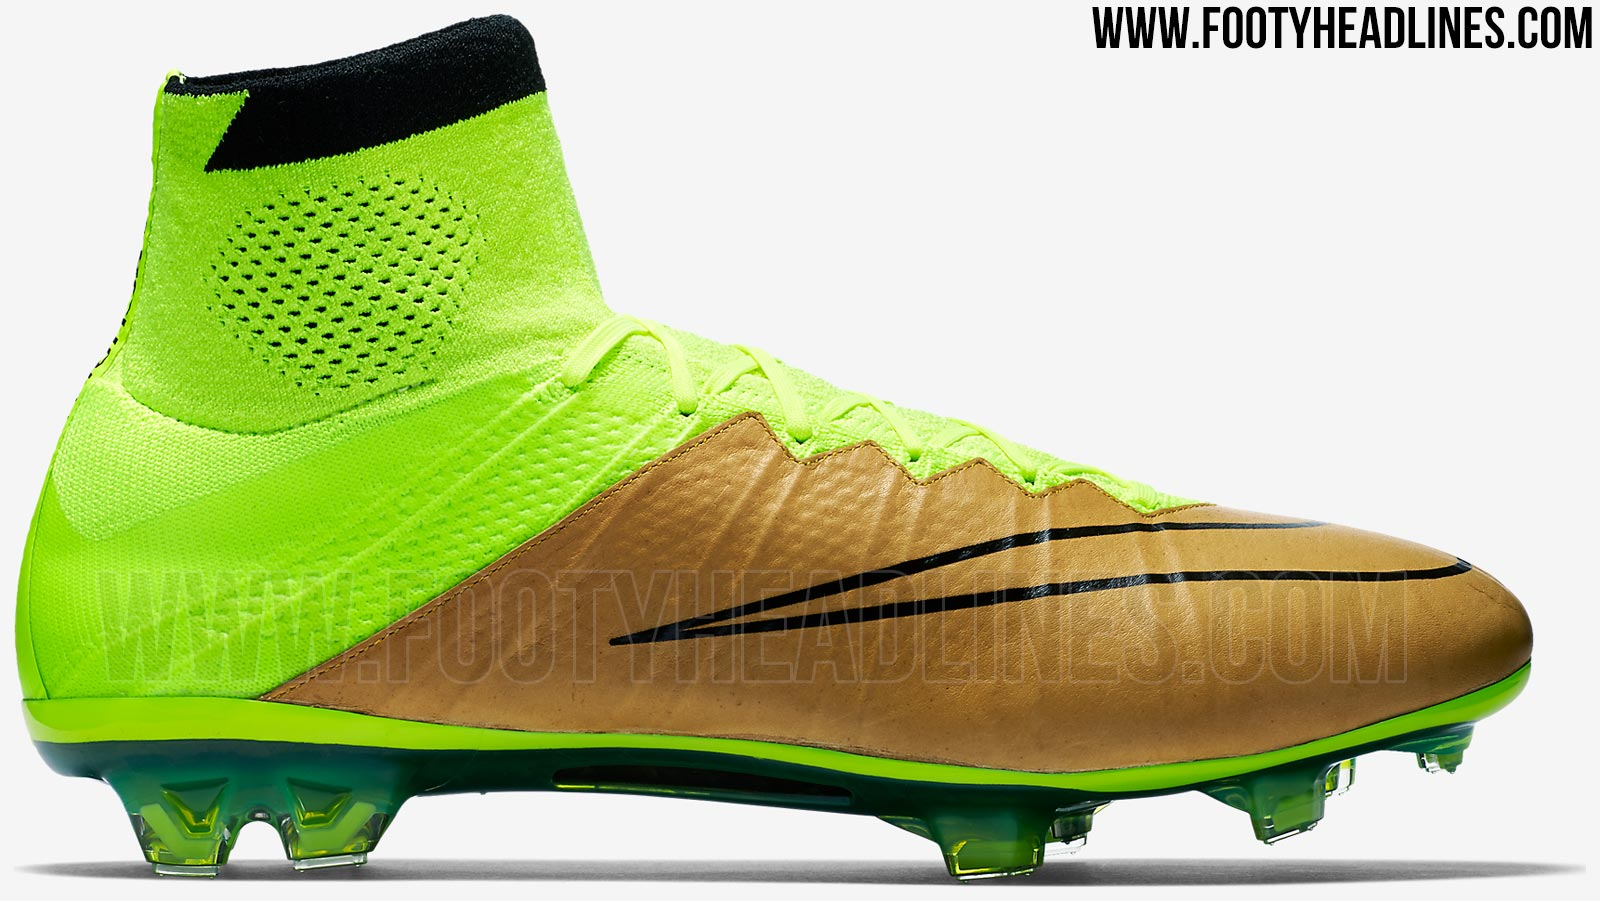 9516e0753 ... Boots Yellow Orange White Nike Mercurial Superfly K-Leather Canvas Volt  .